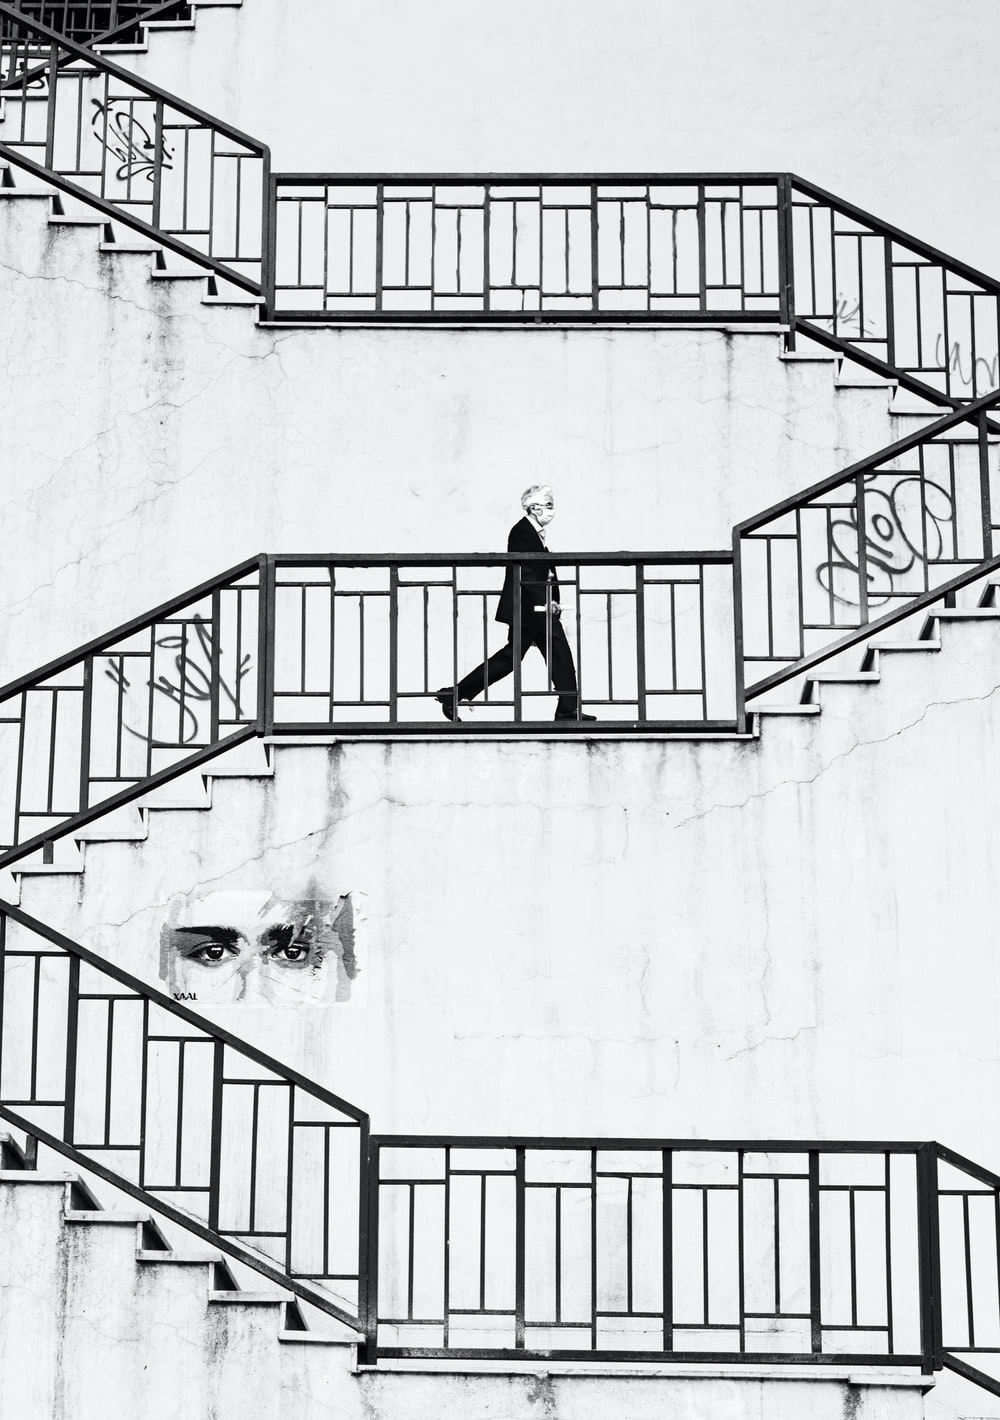 man in black jacket and pants walking down on stairs